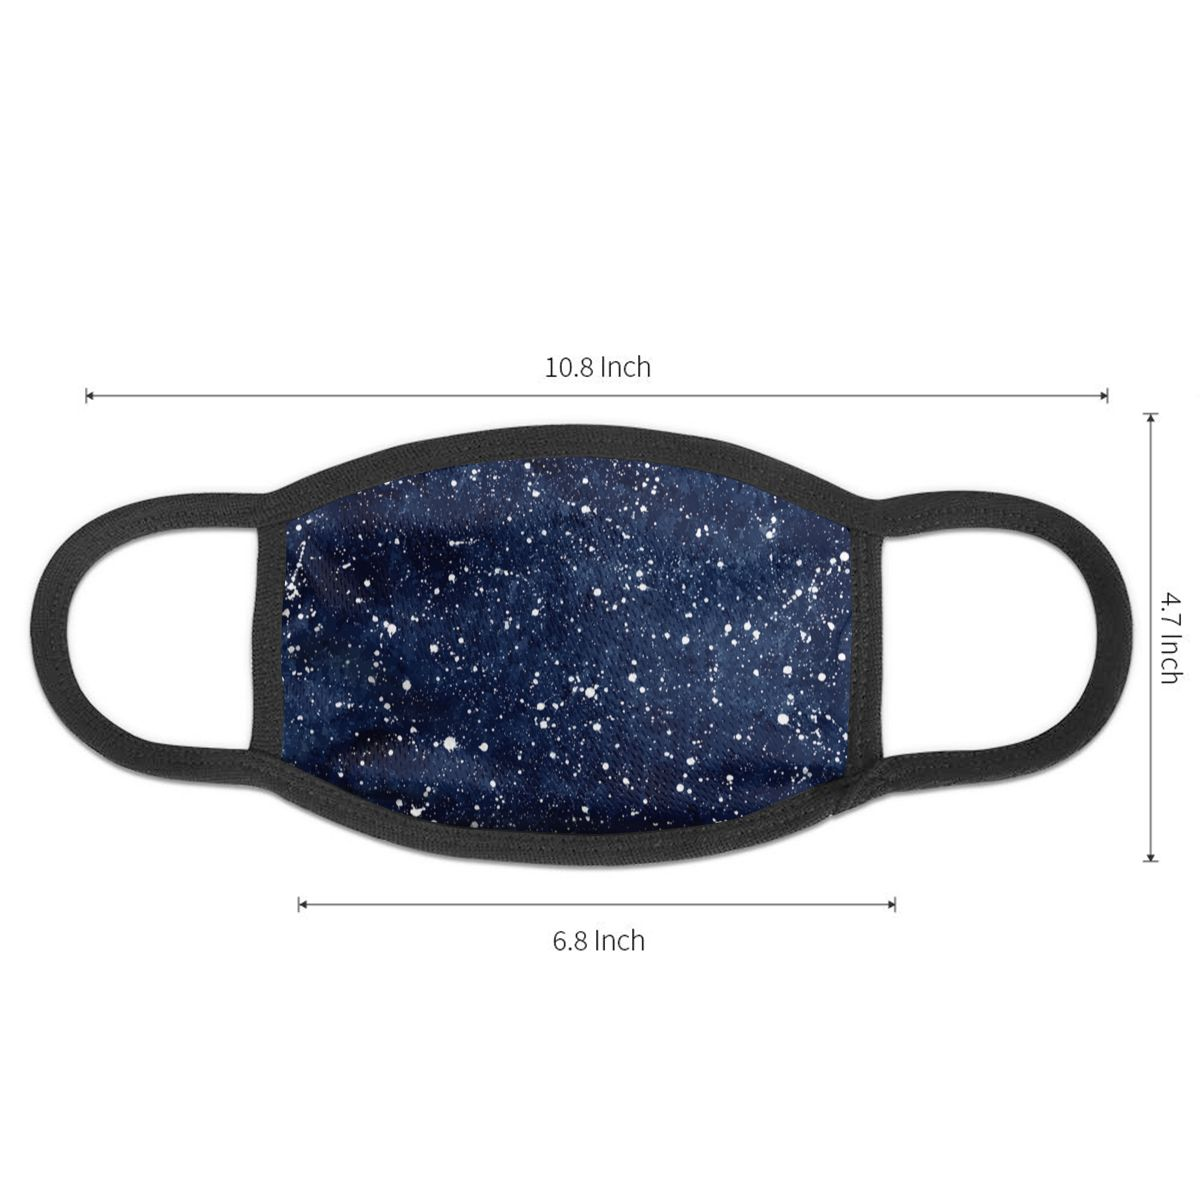 NOISYDESIGNS Dust Mask Cartoon Blue Starry Sky Star Printing Face Mask Anti Mouth Mask Women Men Kpop